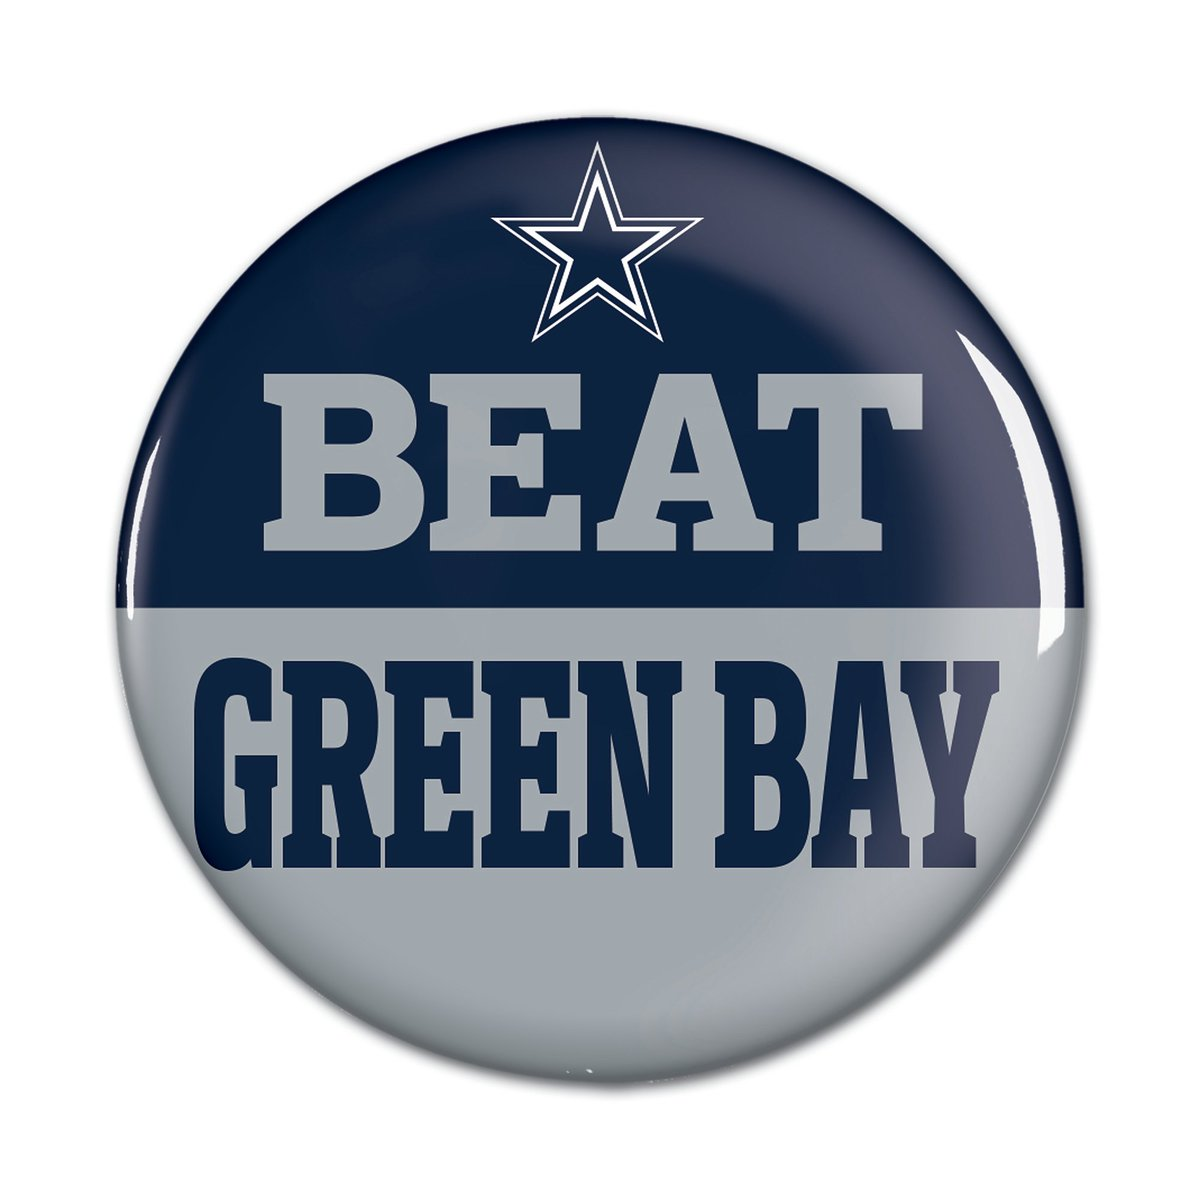 The only thing left to do today in #CowboysNation: BEAT GREEN BAY! #GBvsDAL: dcps.co/button46a5c